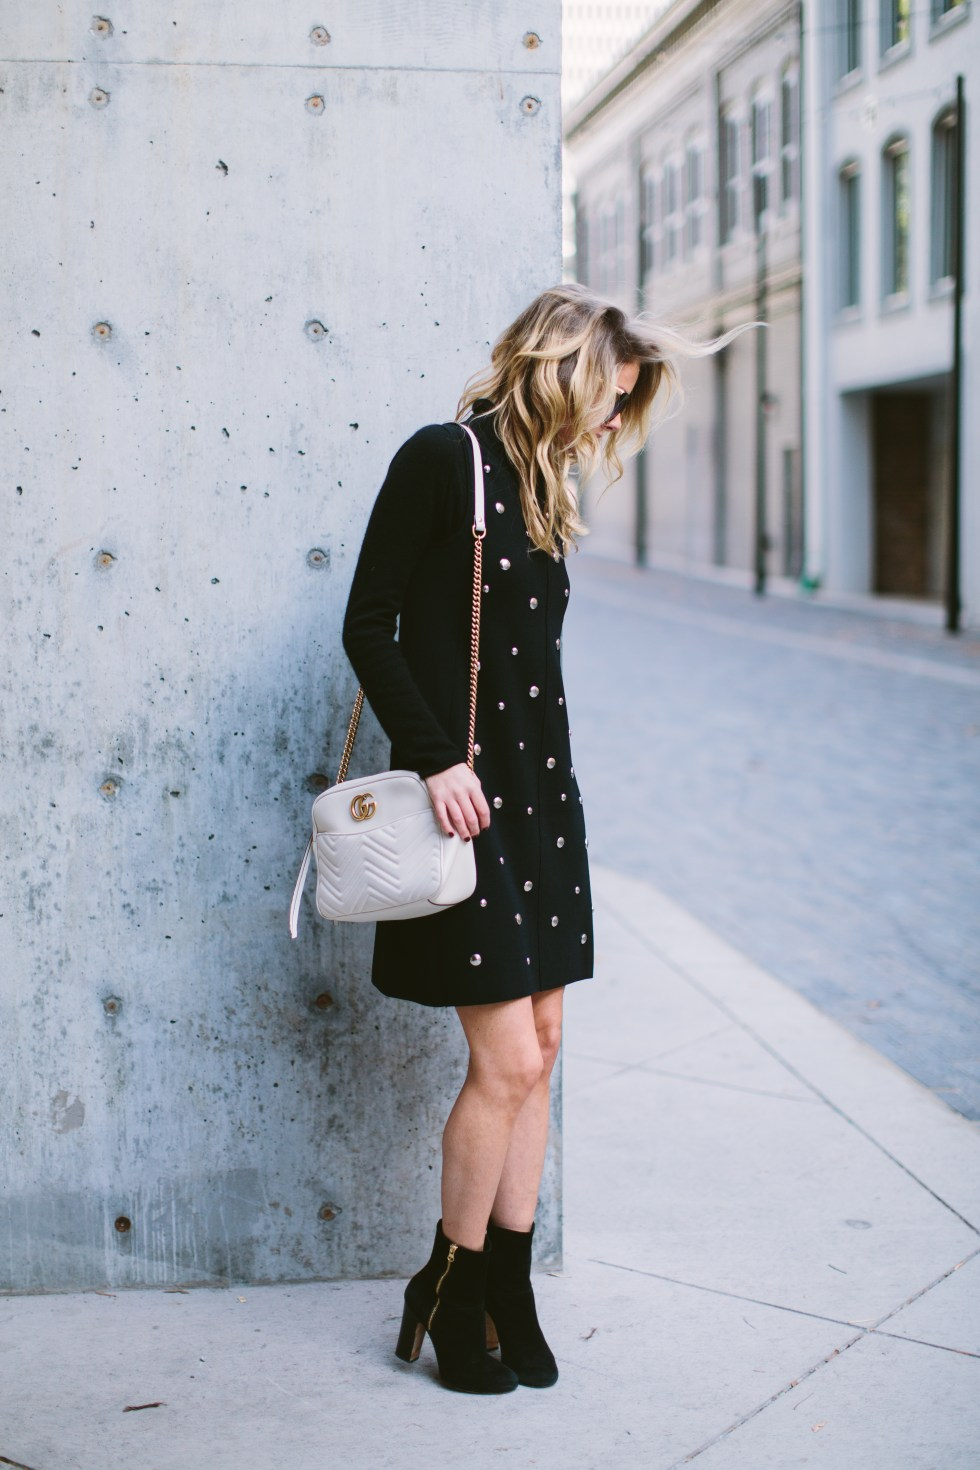 TOPSHOP Dome Stud Dress, Gucci bag, Dee Keller booties and Illesteva sunglasses on PAULARALLIS.COM